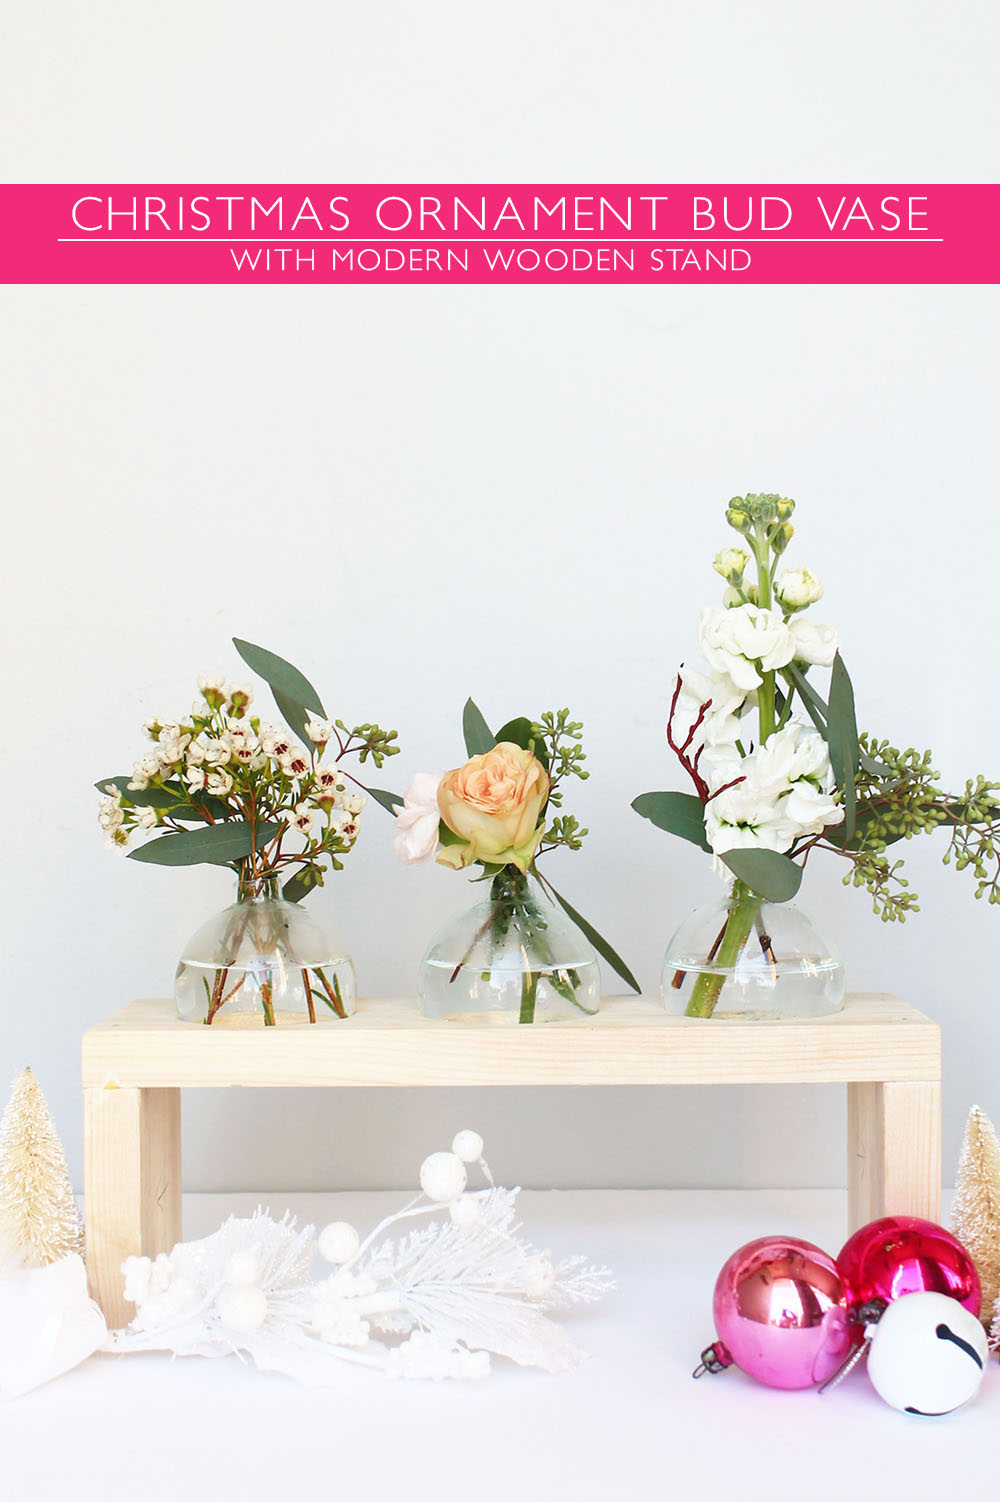 DIY bud vases of Christmas ornaments on a wooden stand